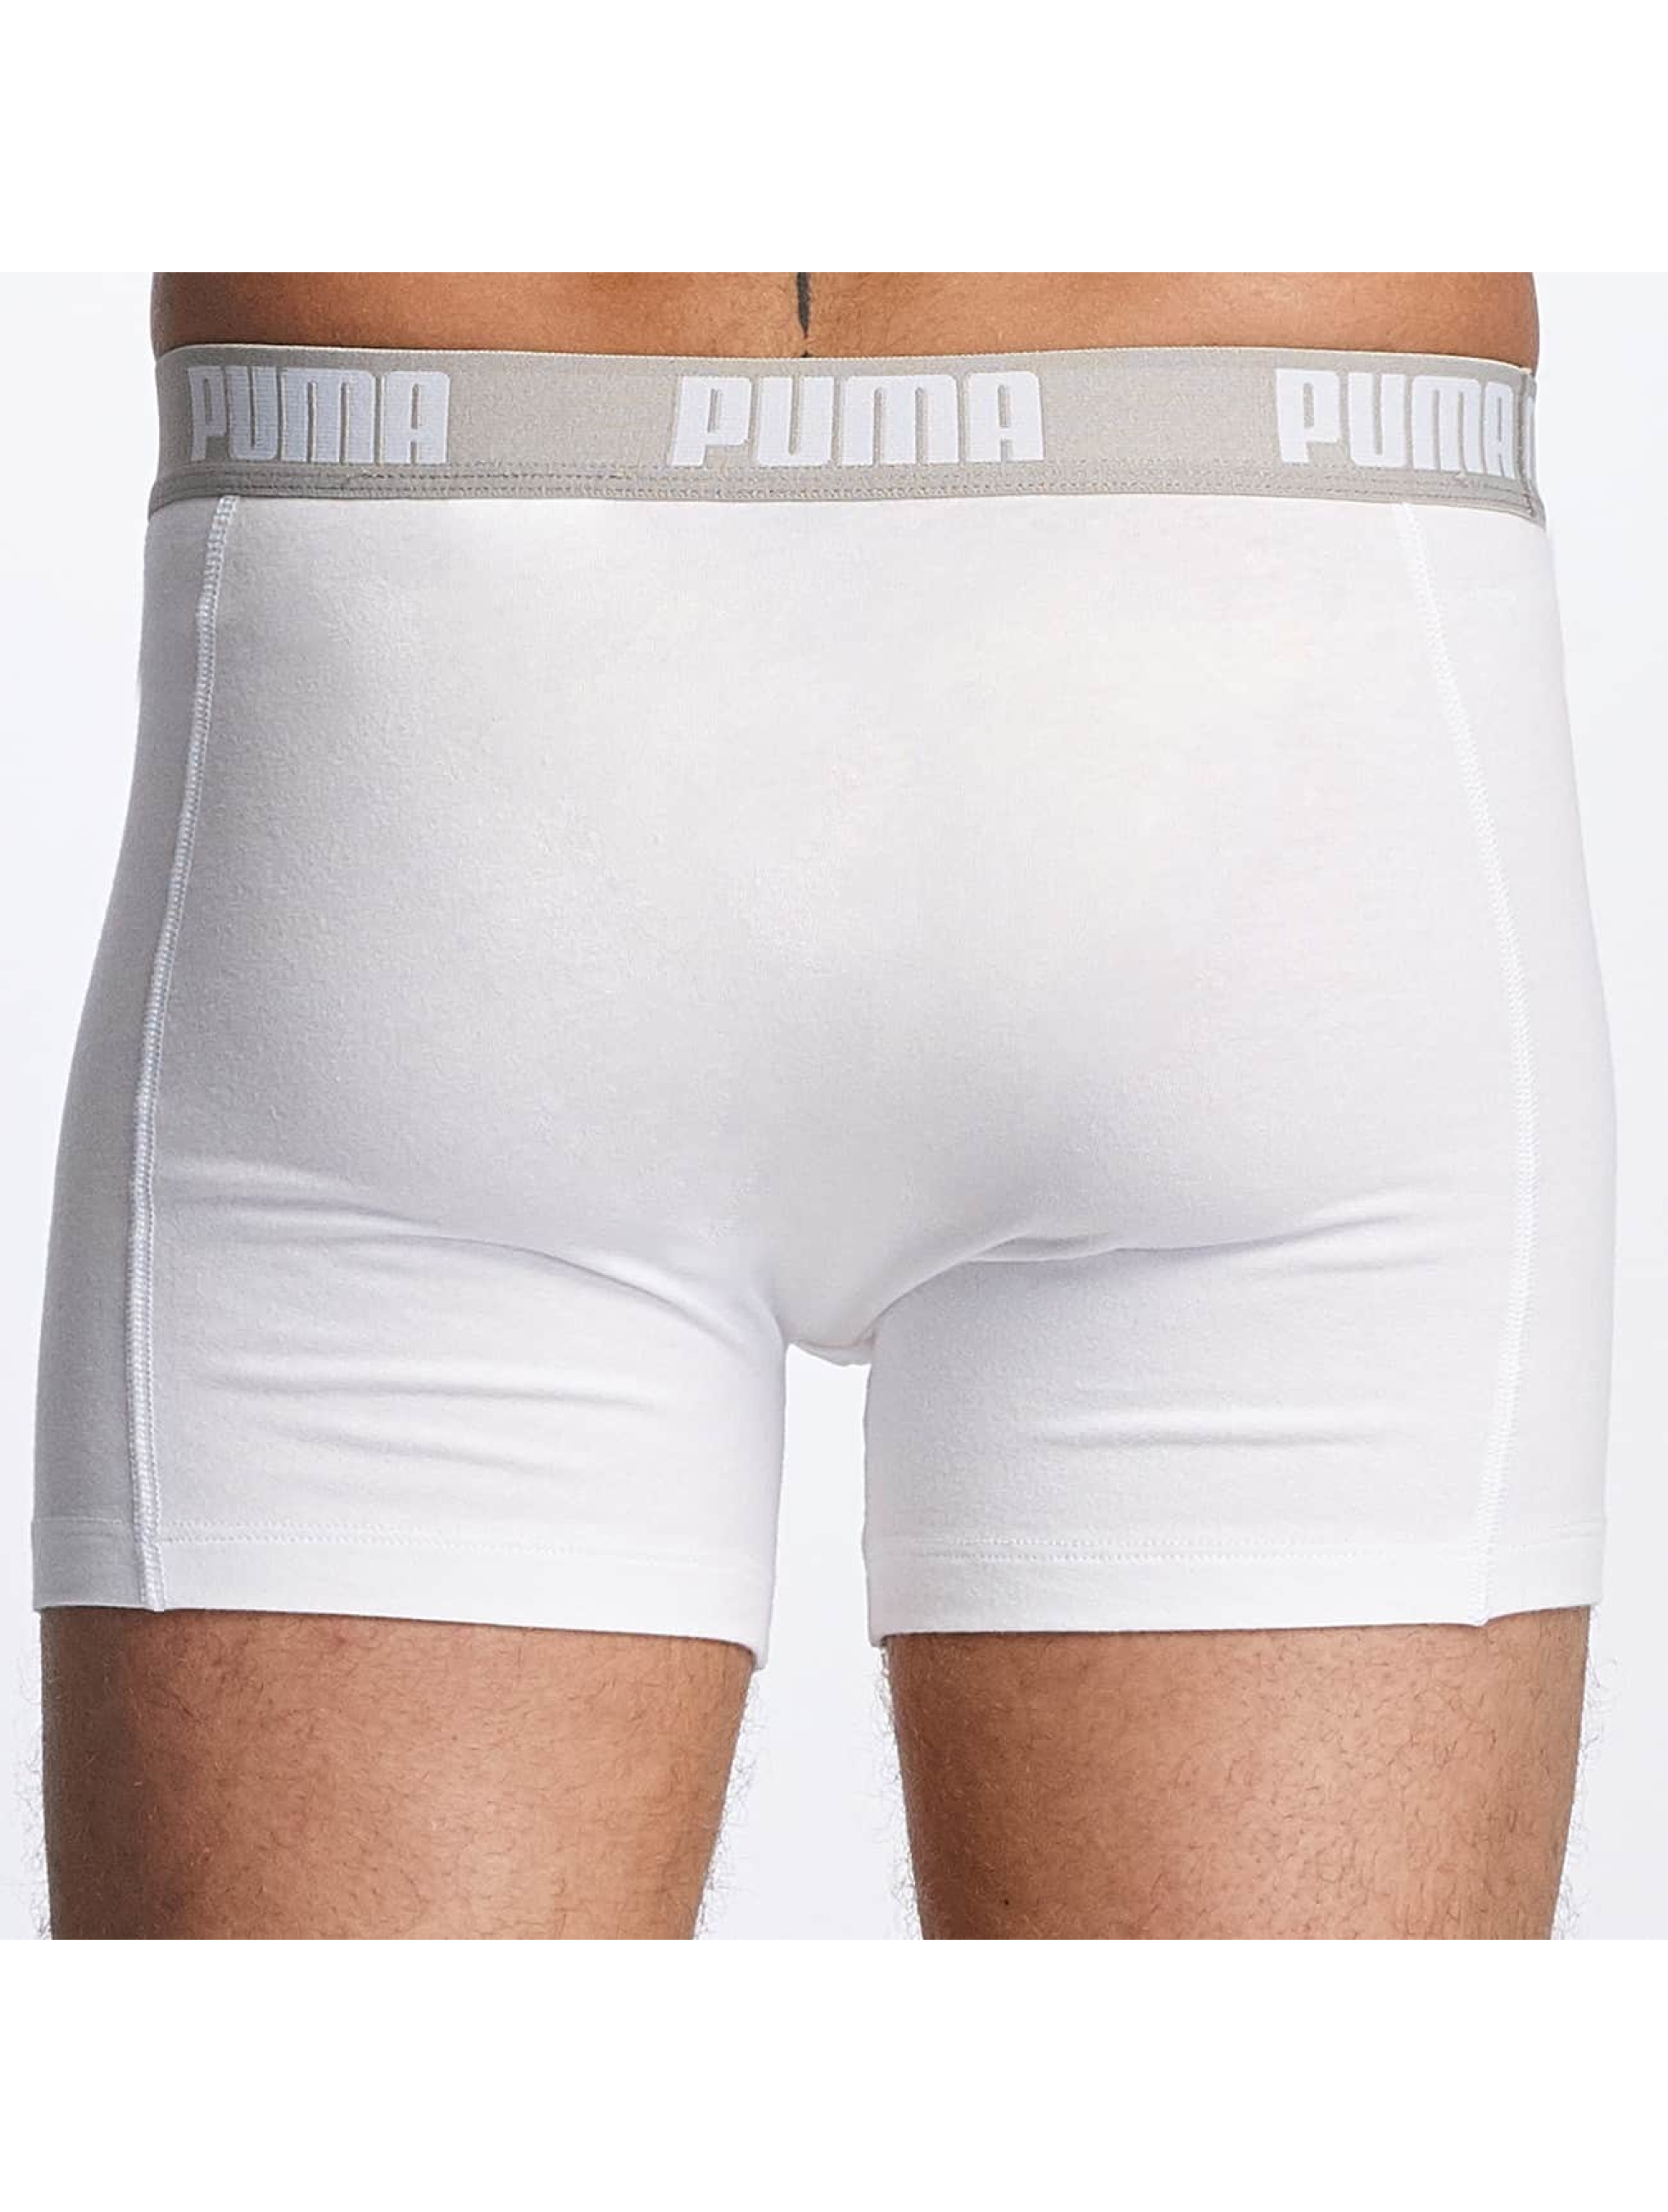 Puma boxershorts 2-Pack Basic wit